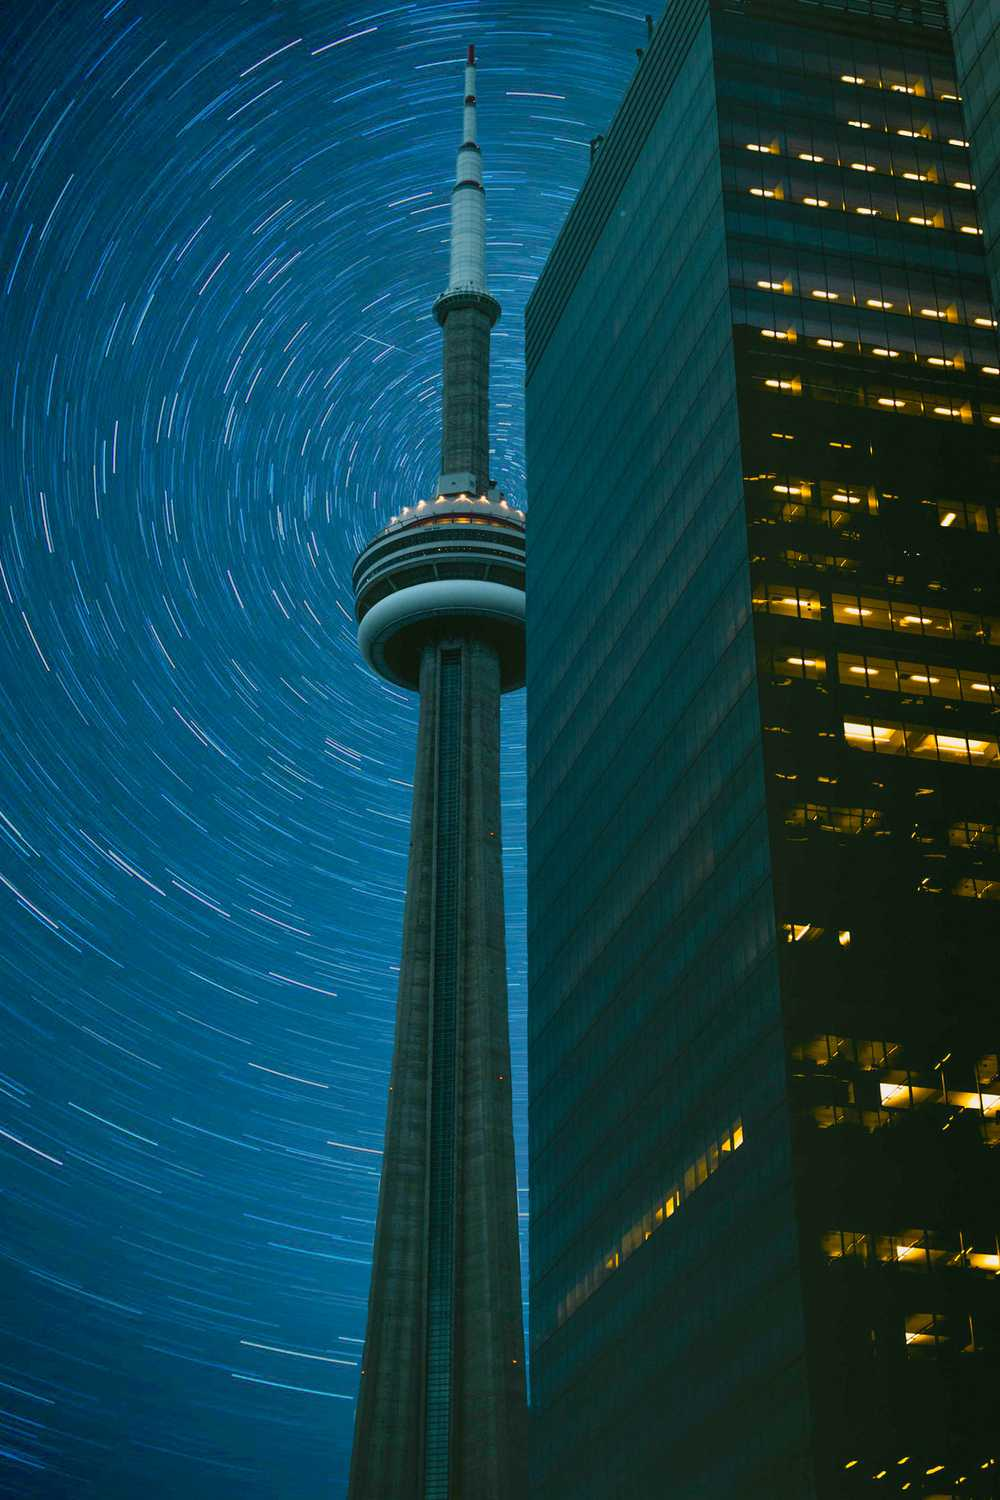 CN Tower in time-lapse photography